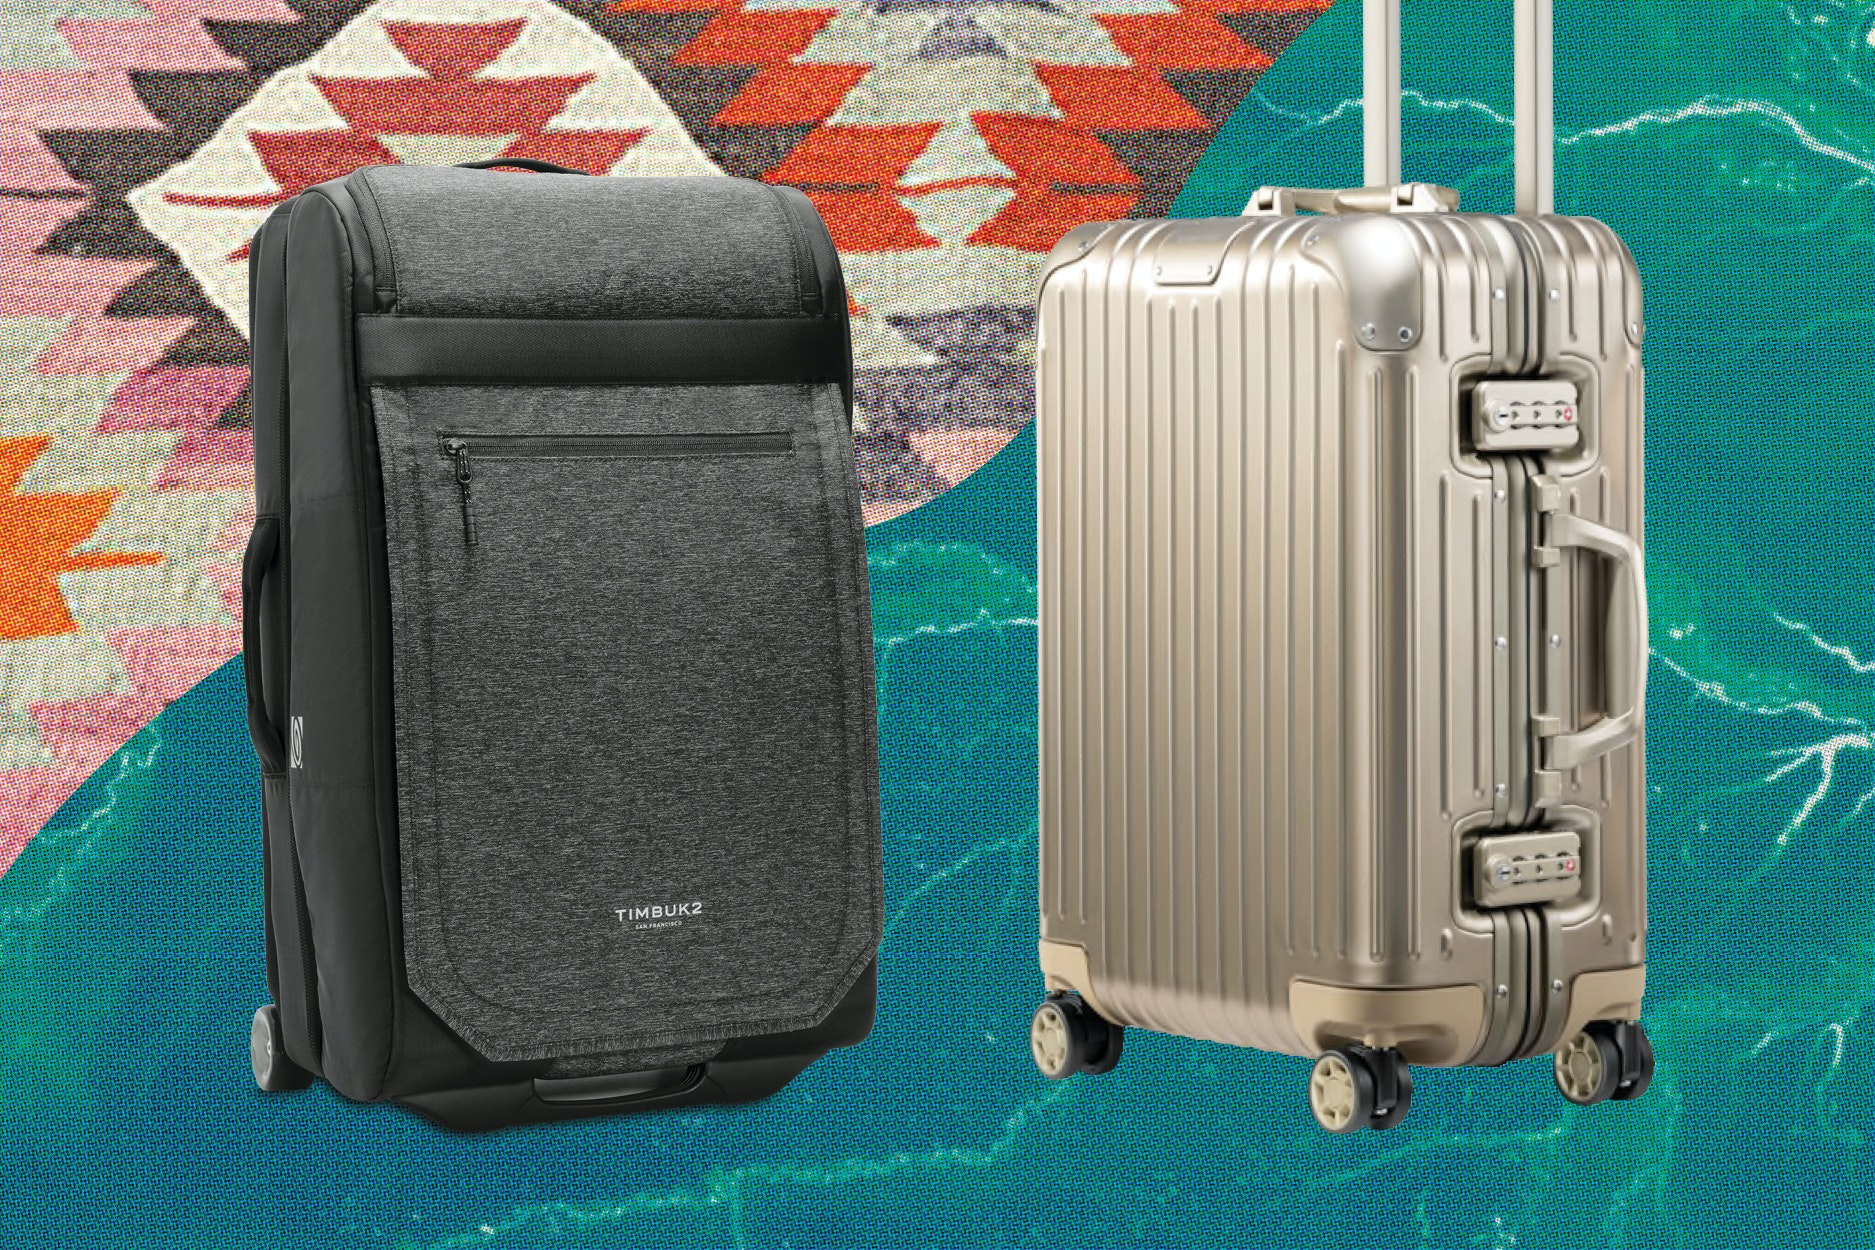 The Timbuk2 Copilot, left, and Rimowa's Original Cabin, right